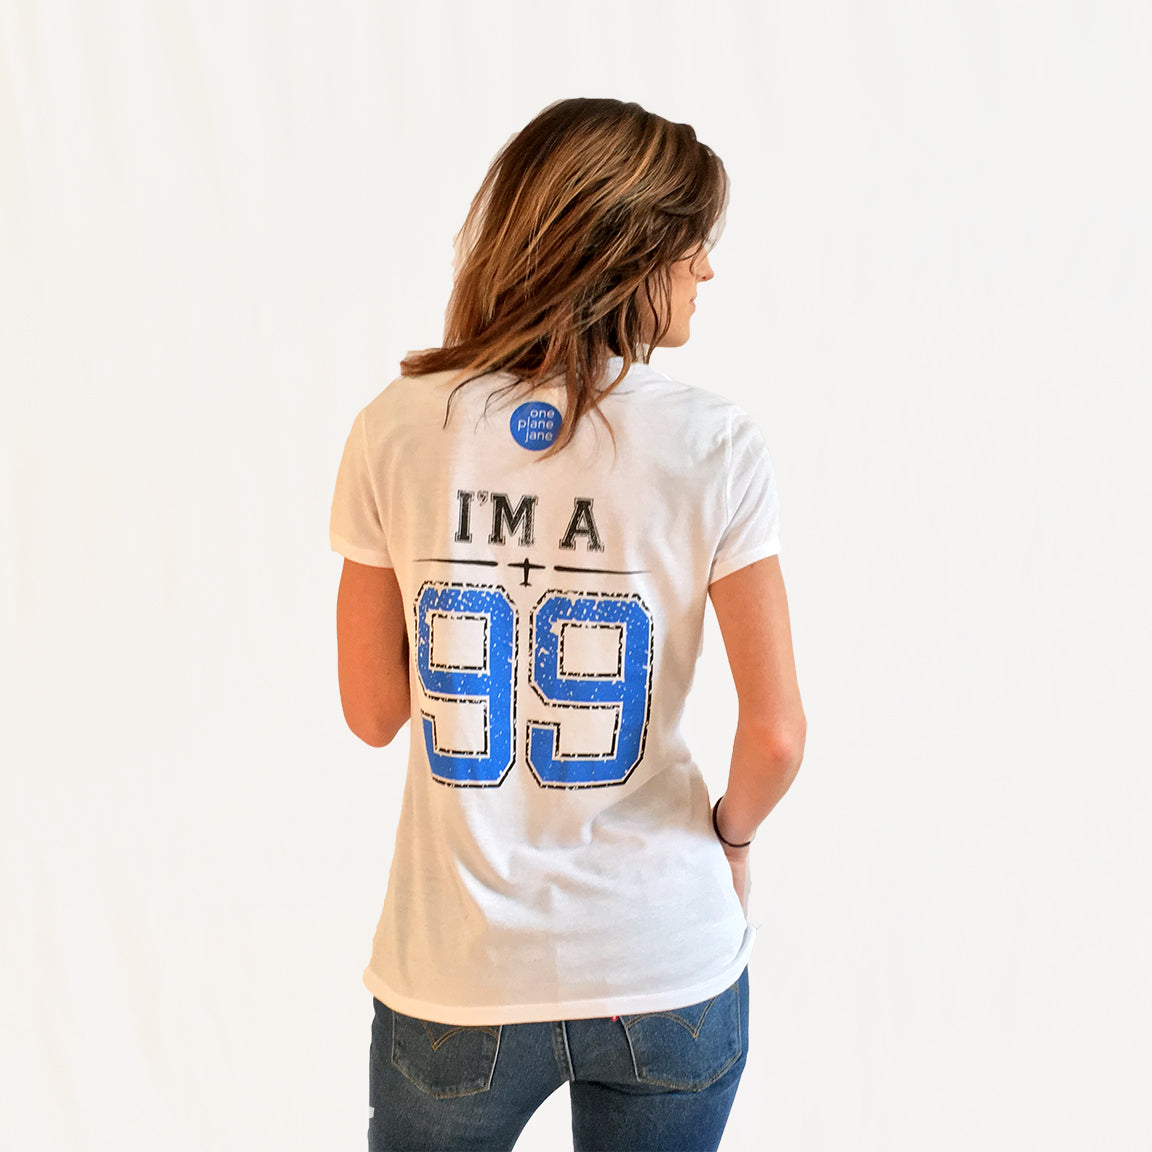 "One Plane Jane - I'm A 99 football style shirt.  Back view with ""99"" printed large as if a player's number.  Printed in bright blue and black.  One Plane Jane logo below collar"